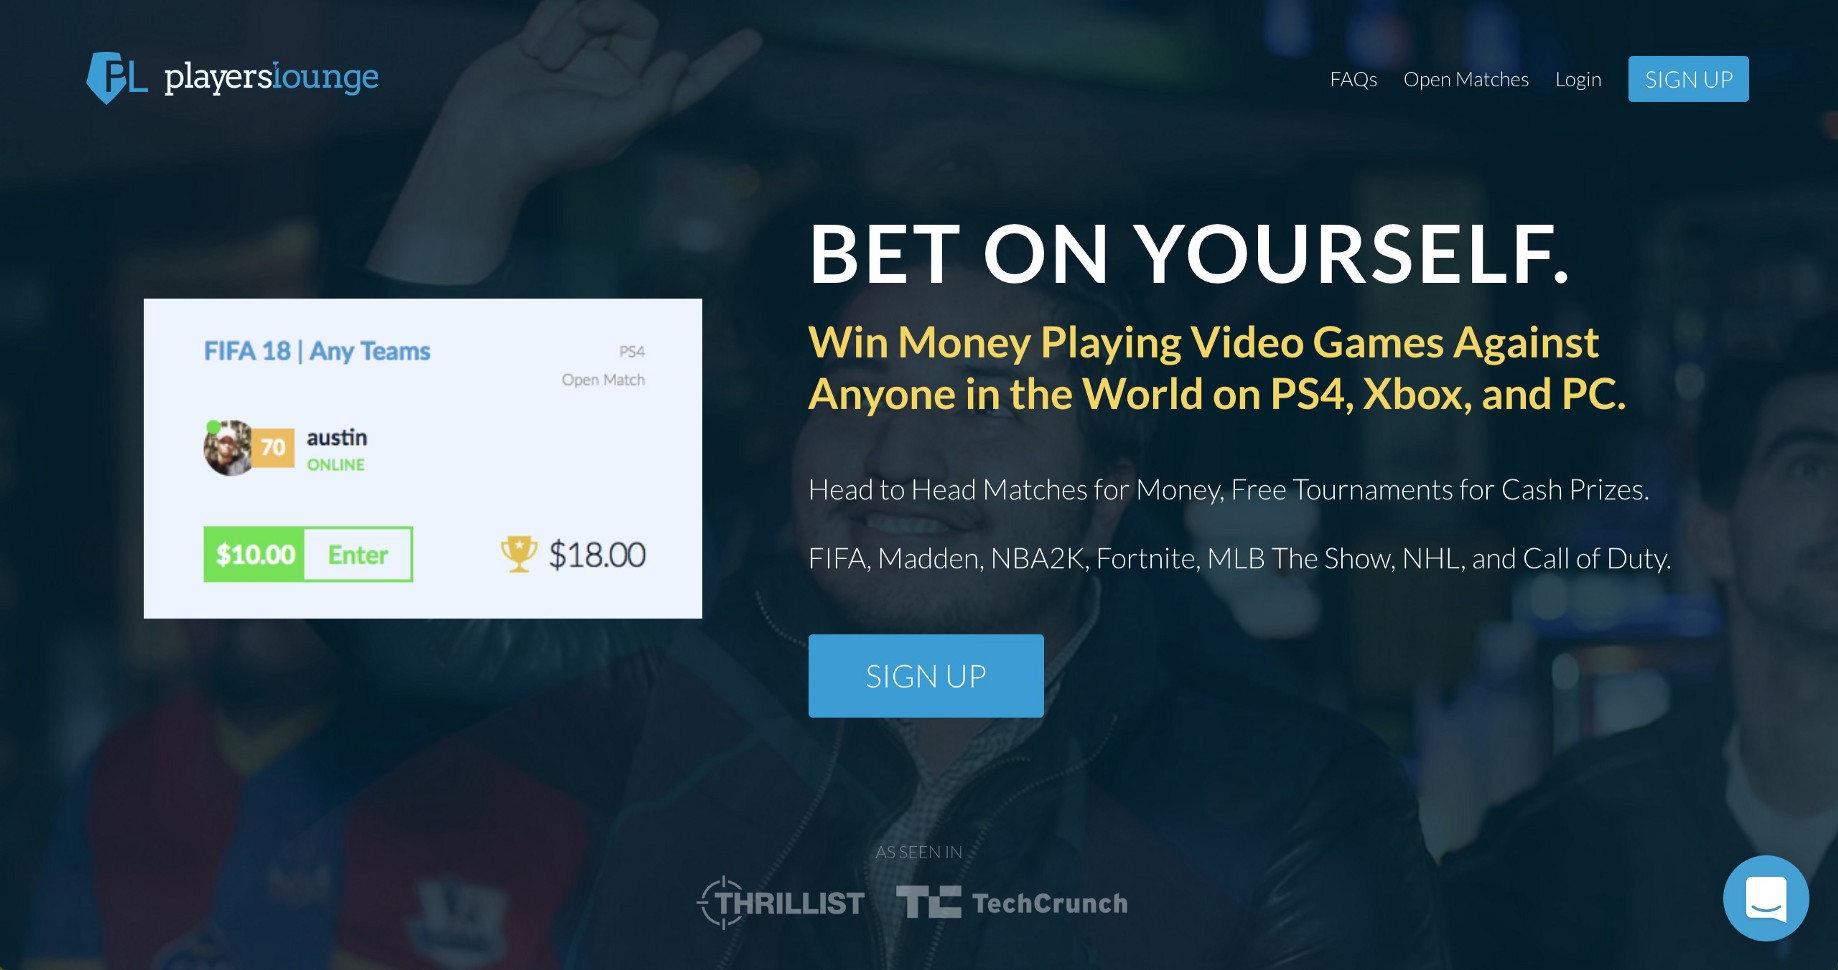 Player's Lounge: The Best Way to Play Video Games for Money